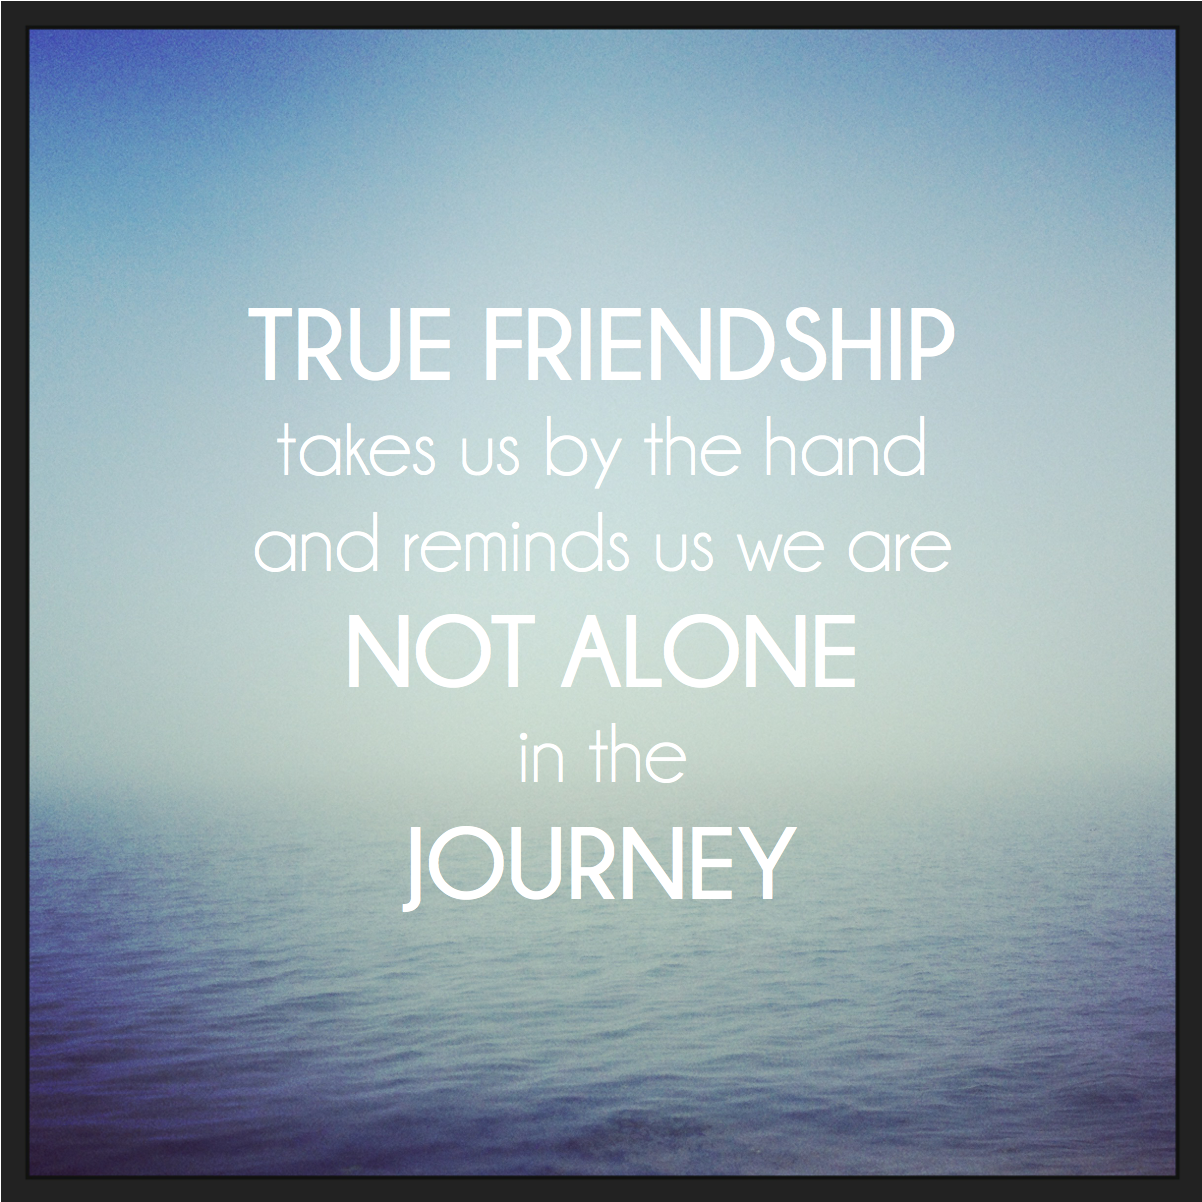 Friend Quotes Alone: True Friendship Takes By The Hand And Reminds Us We Are